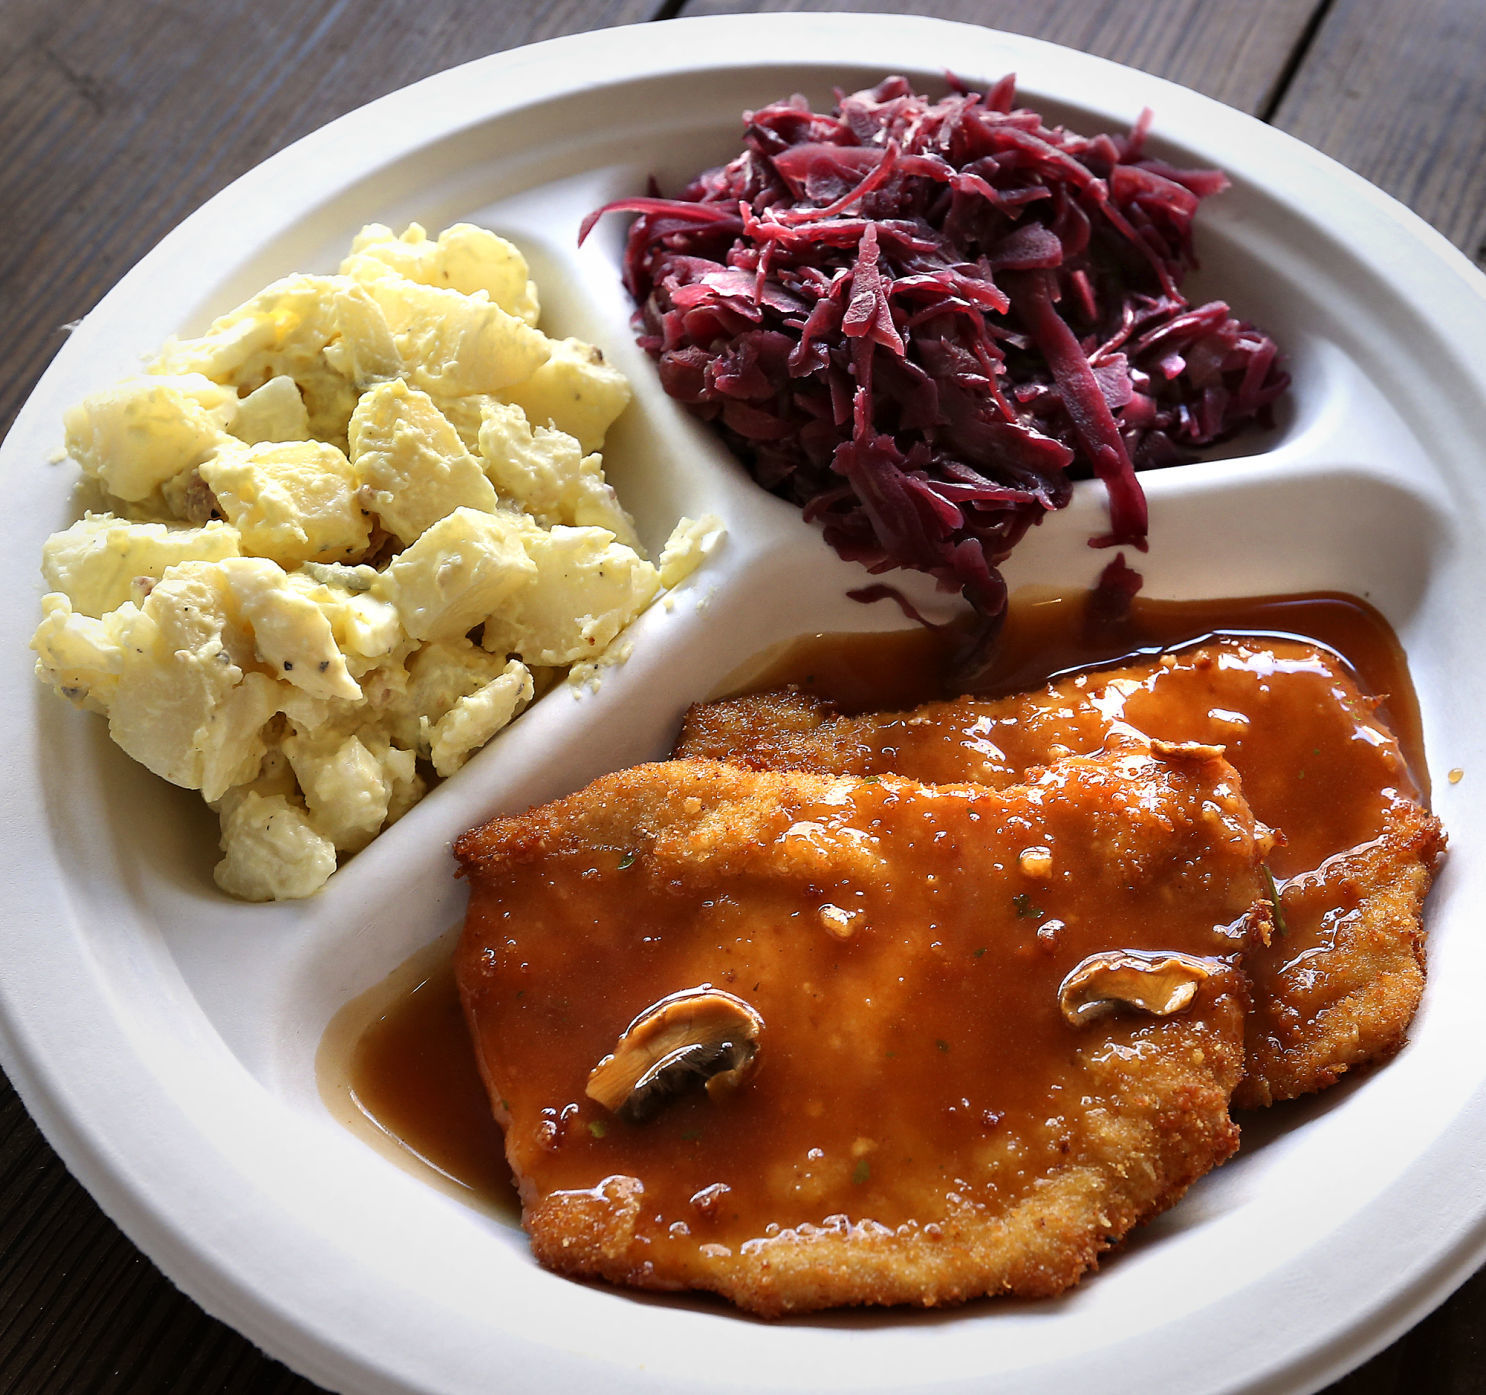 Schnitzel Restaurant German Table Restaurant Offers Beers And Brats On Loudoun Street